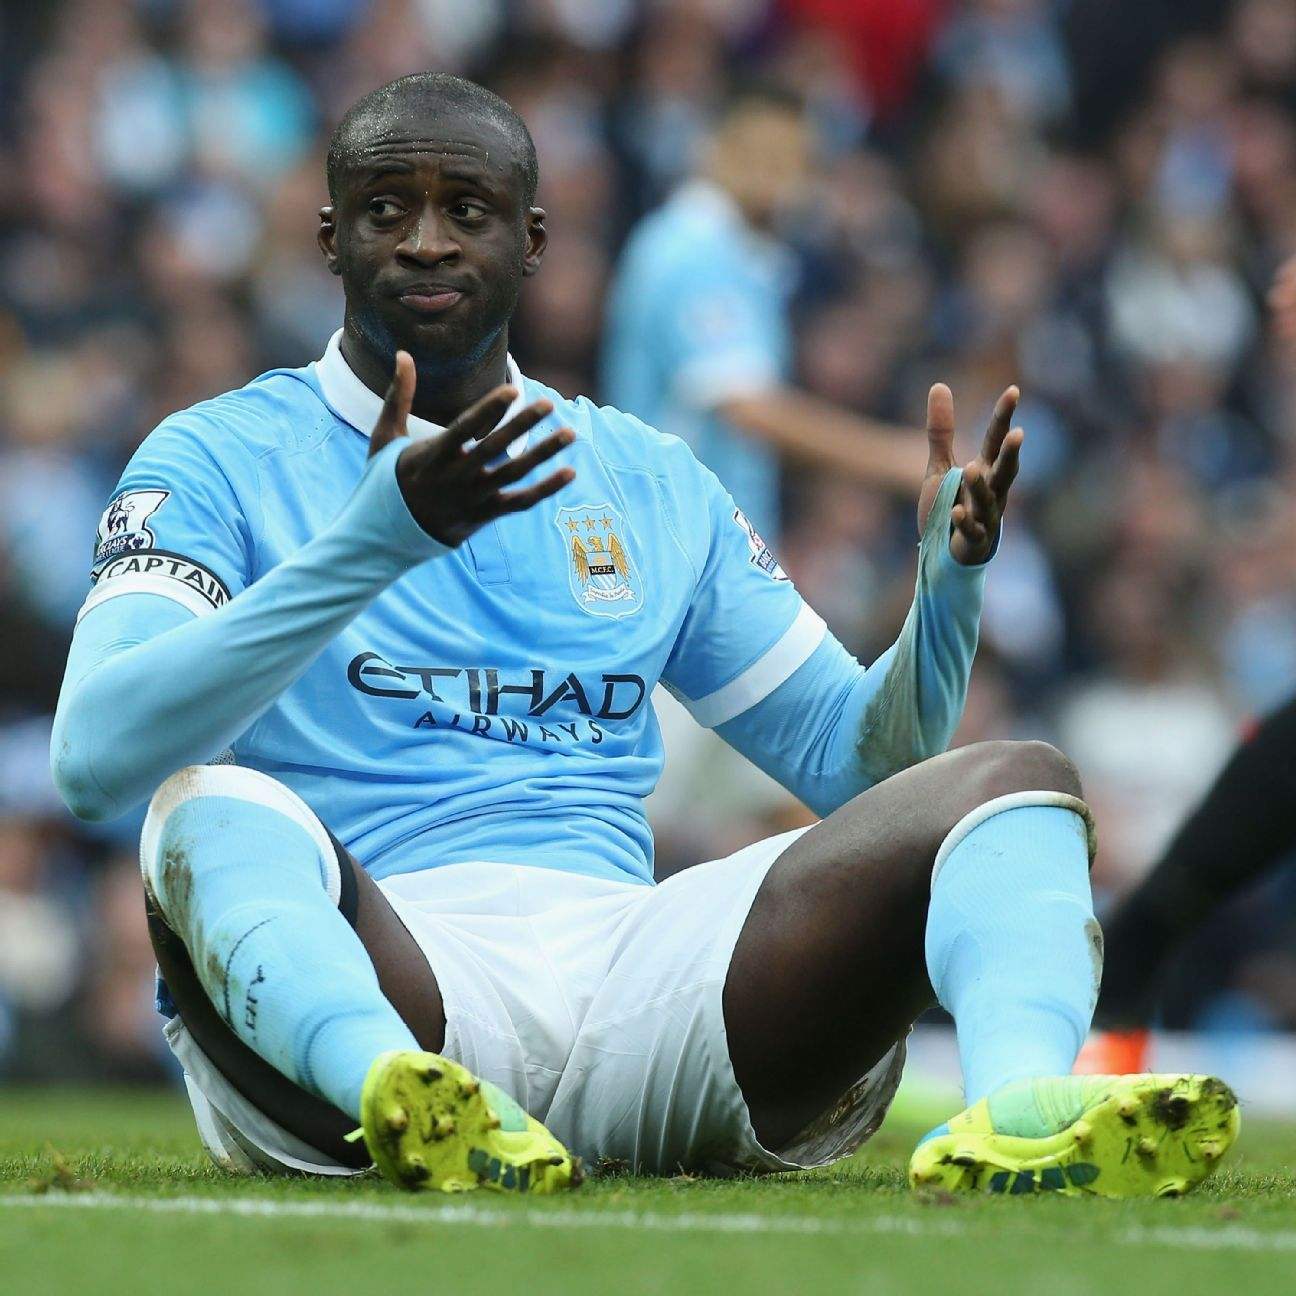 Manchester City midfielder Yaya Toure charged with drink driving